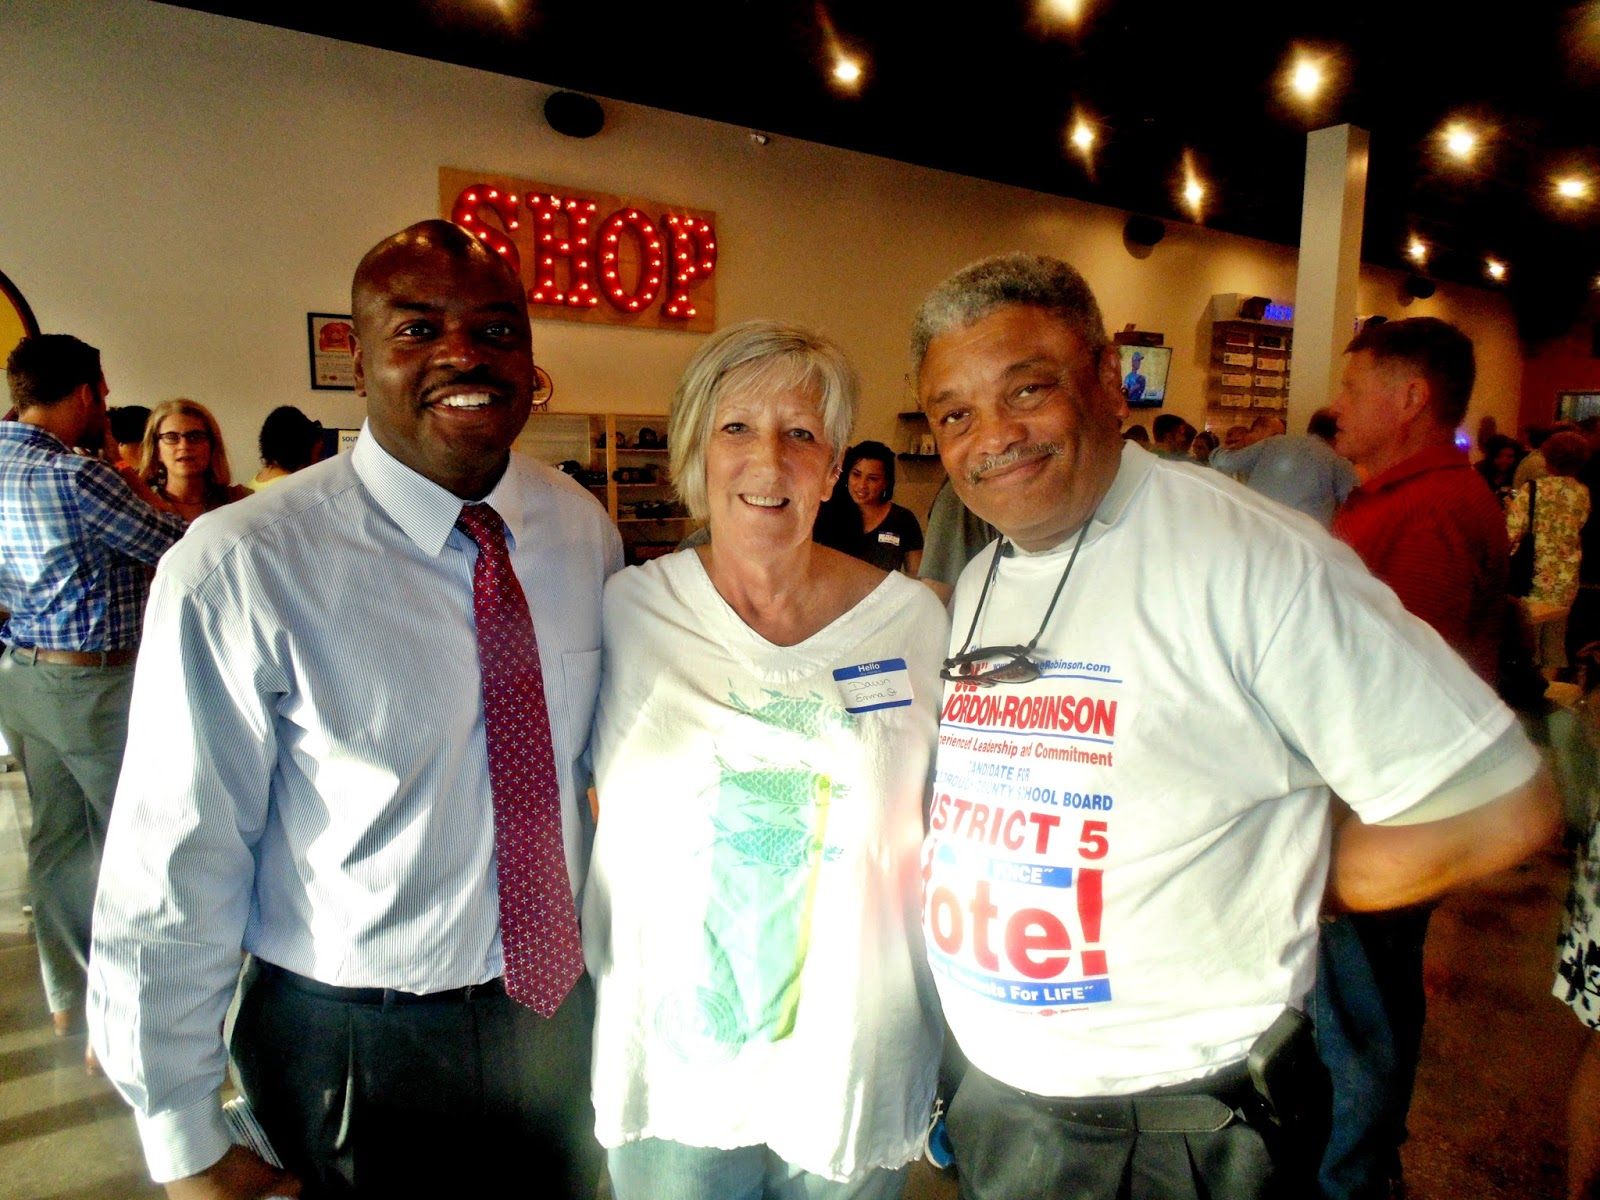 The Ybor City Stogie Quarterly Resident Happy Hour Candidate Forum